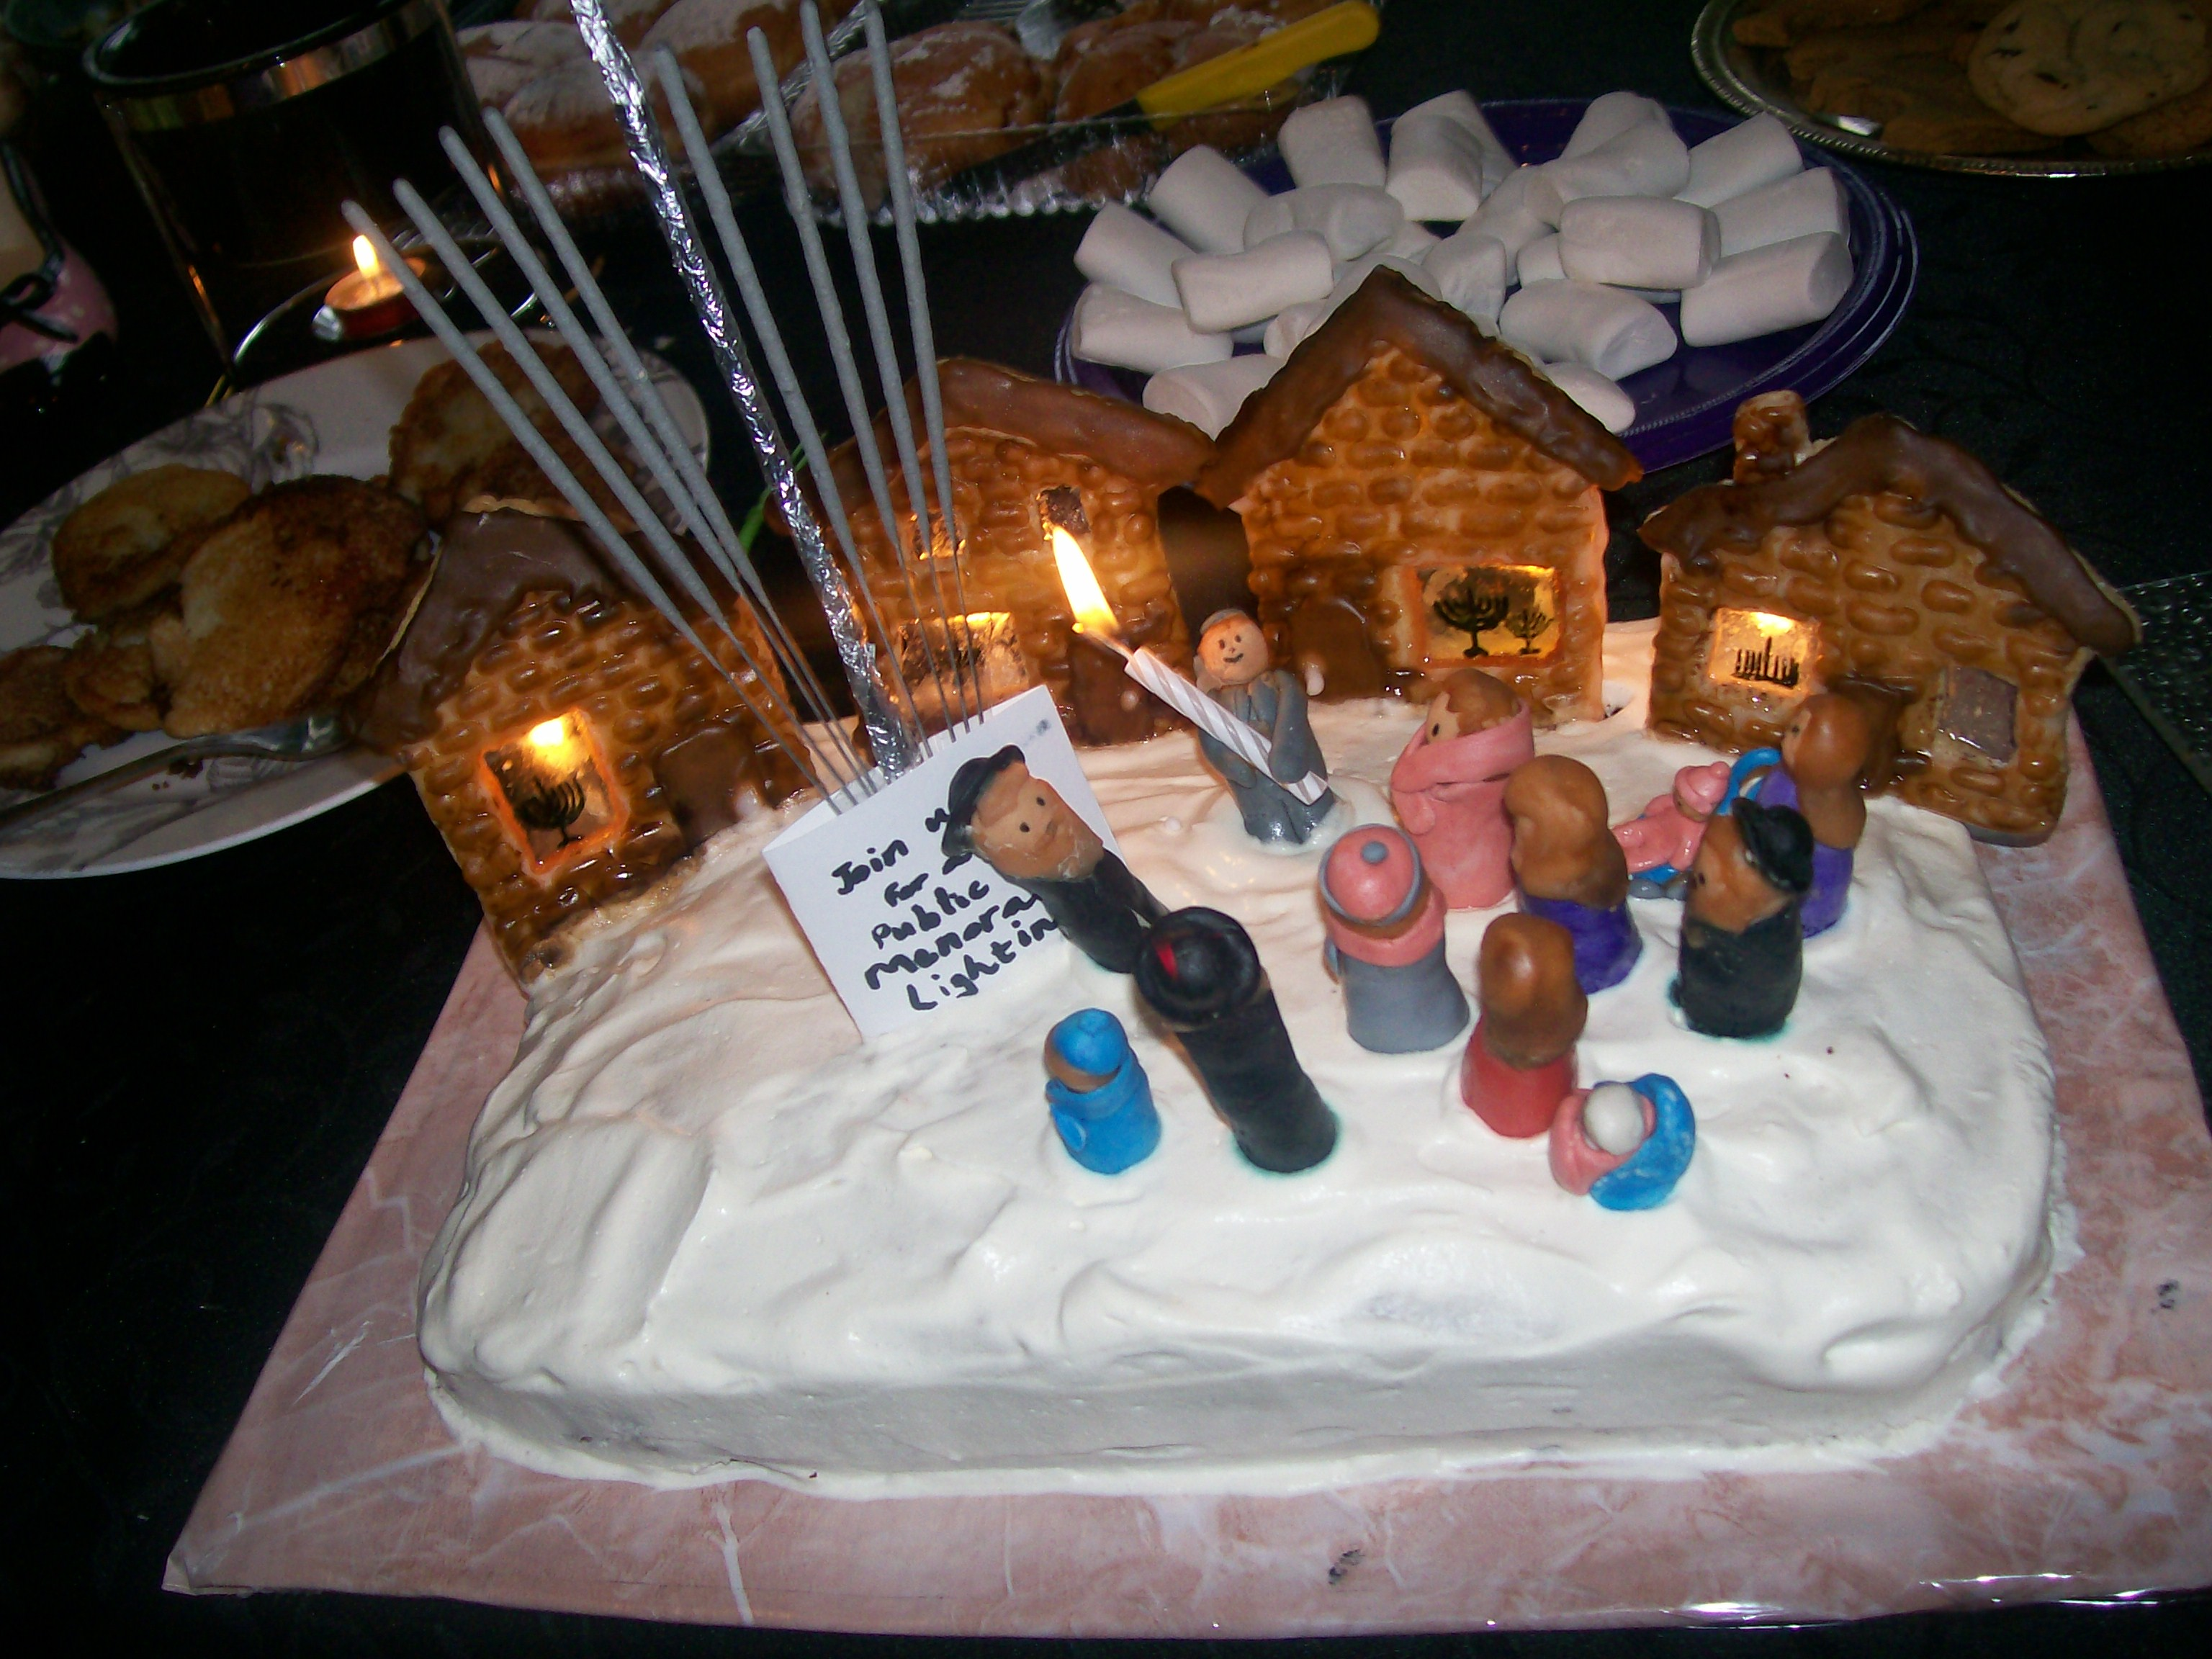 This cake depicts the scene of a Public Menorah Lighting on Chanukah. All of the Jewish people in the village are gathered around the giant menorah (made of sparklers) in the town square. 